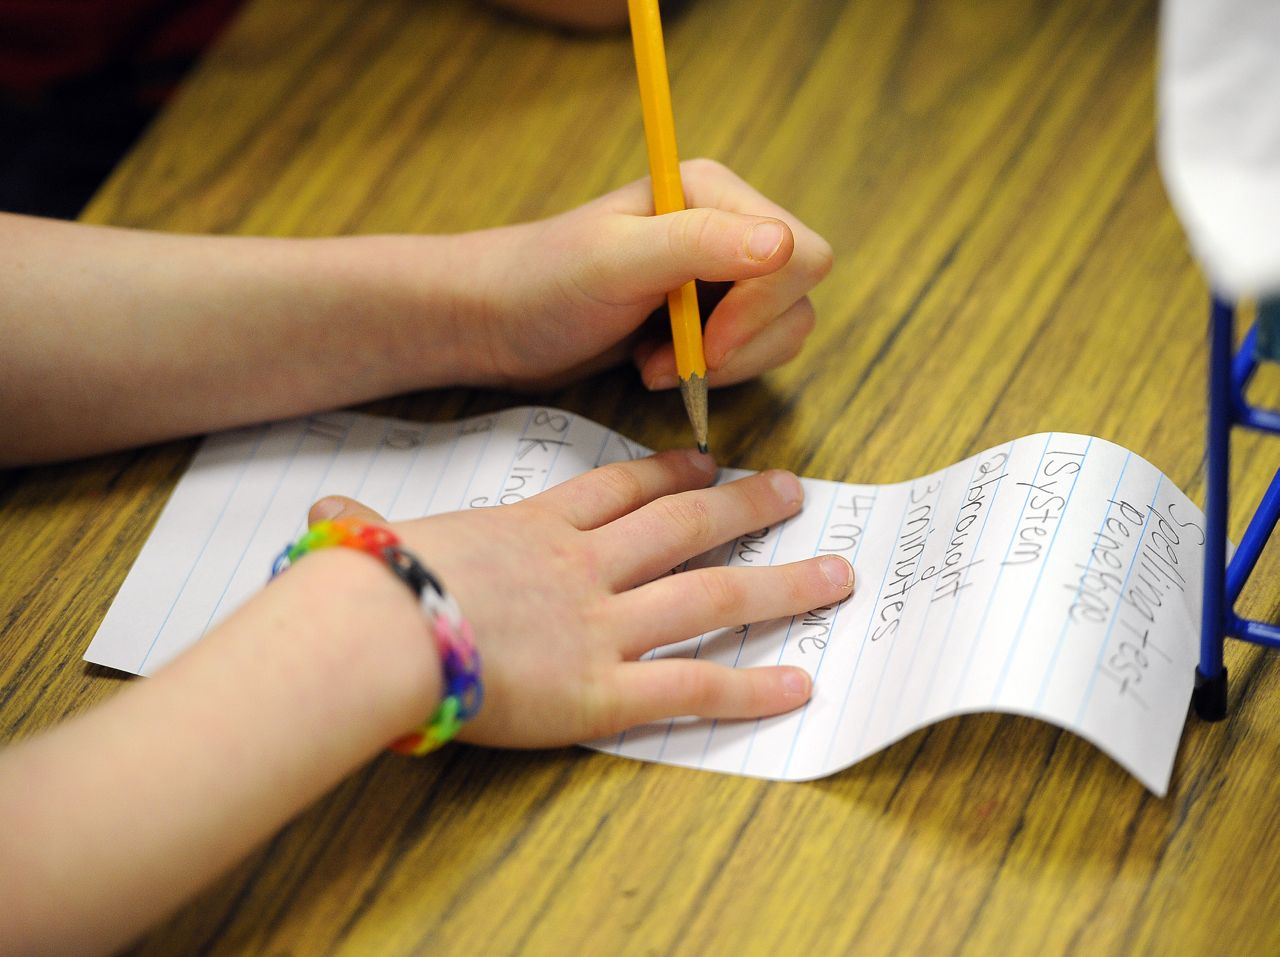 A close-up of a young student's hands as they work on a spelling test.